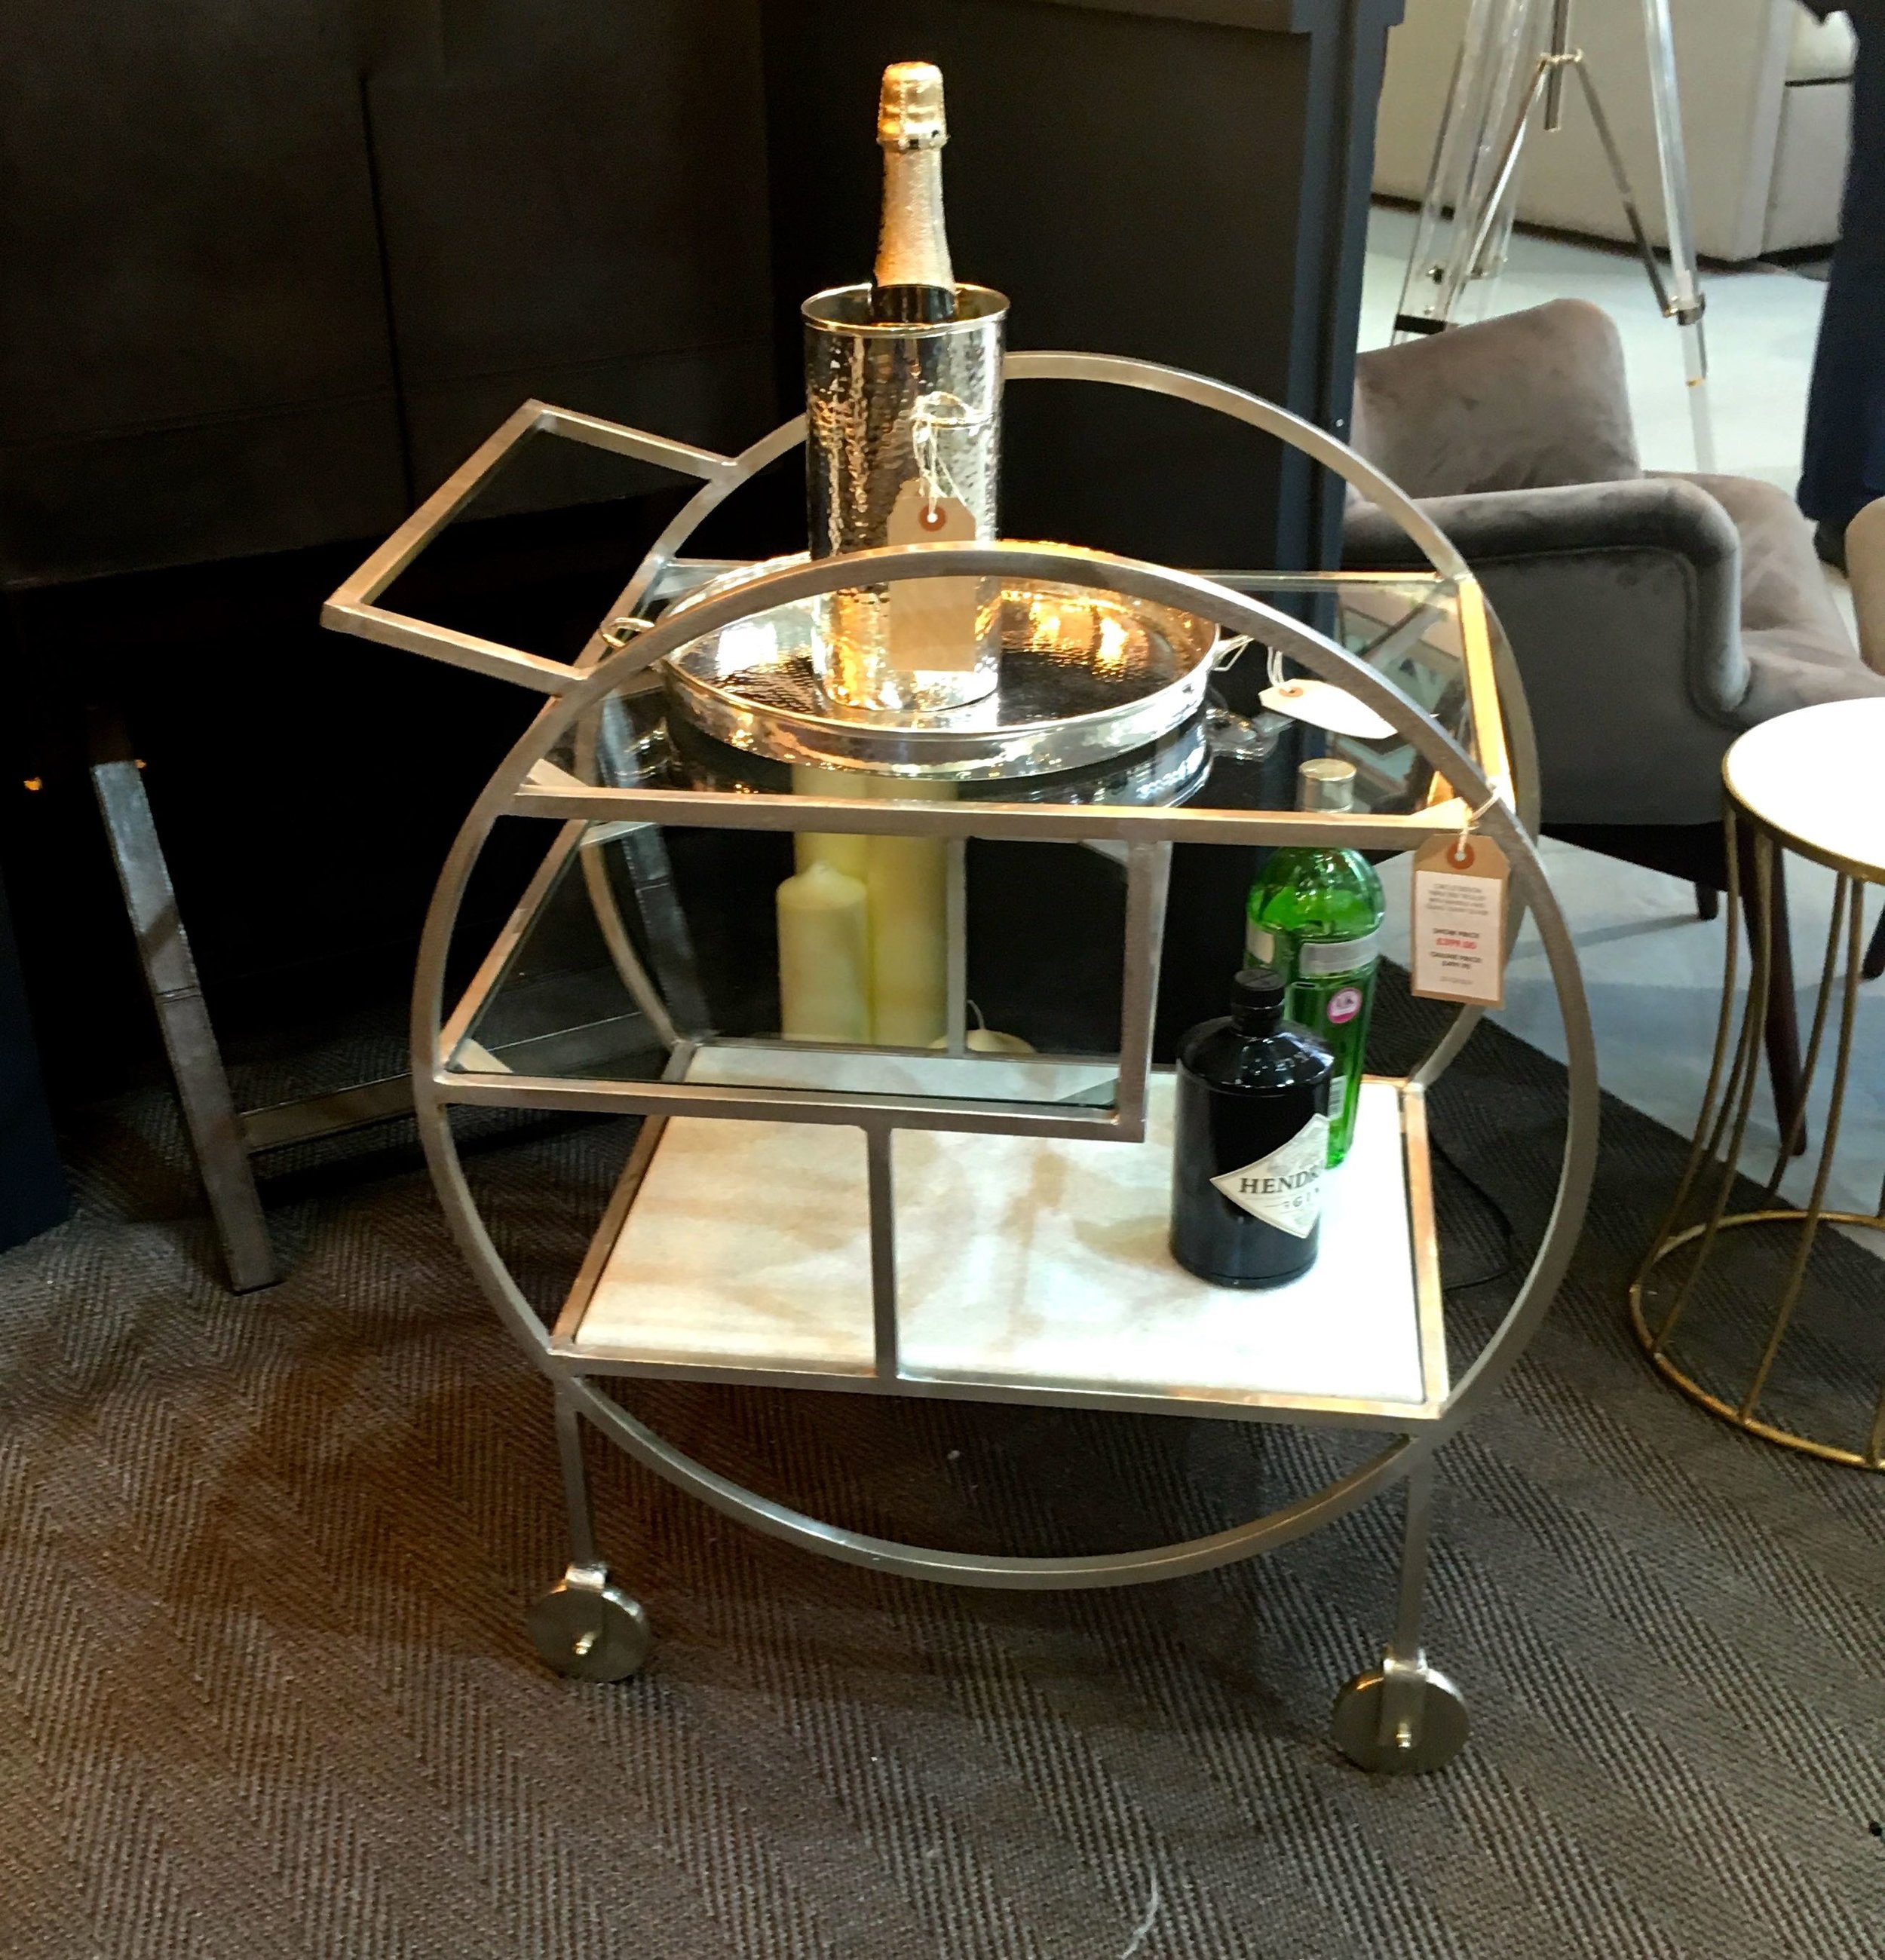 An art deco style drinks trolley